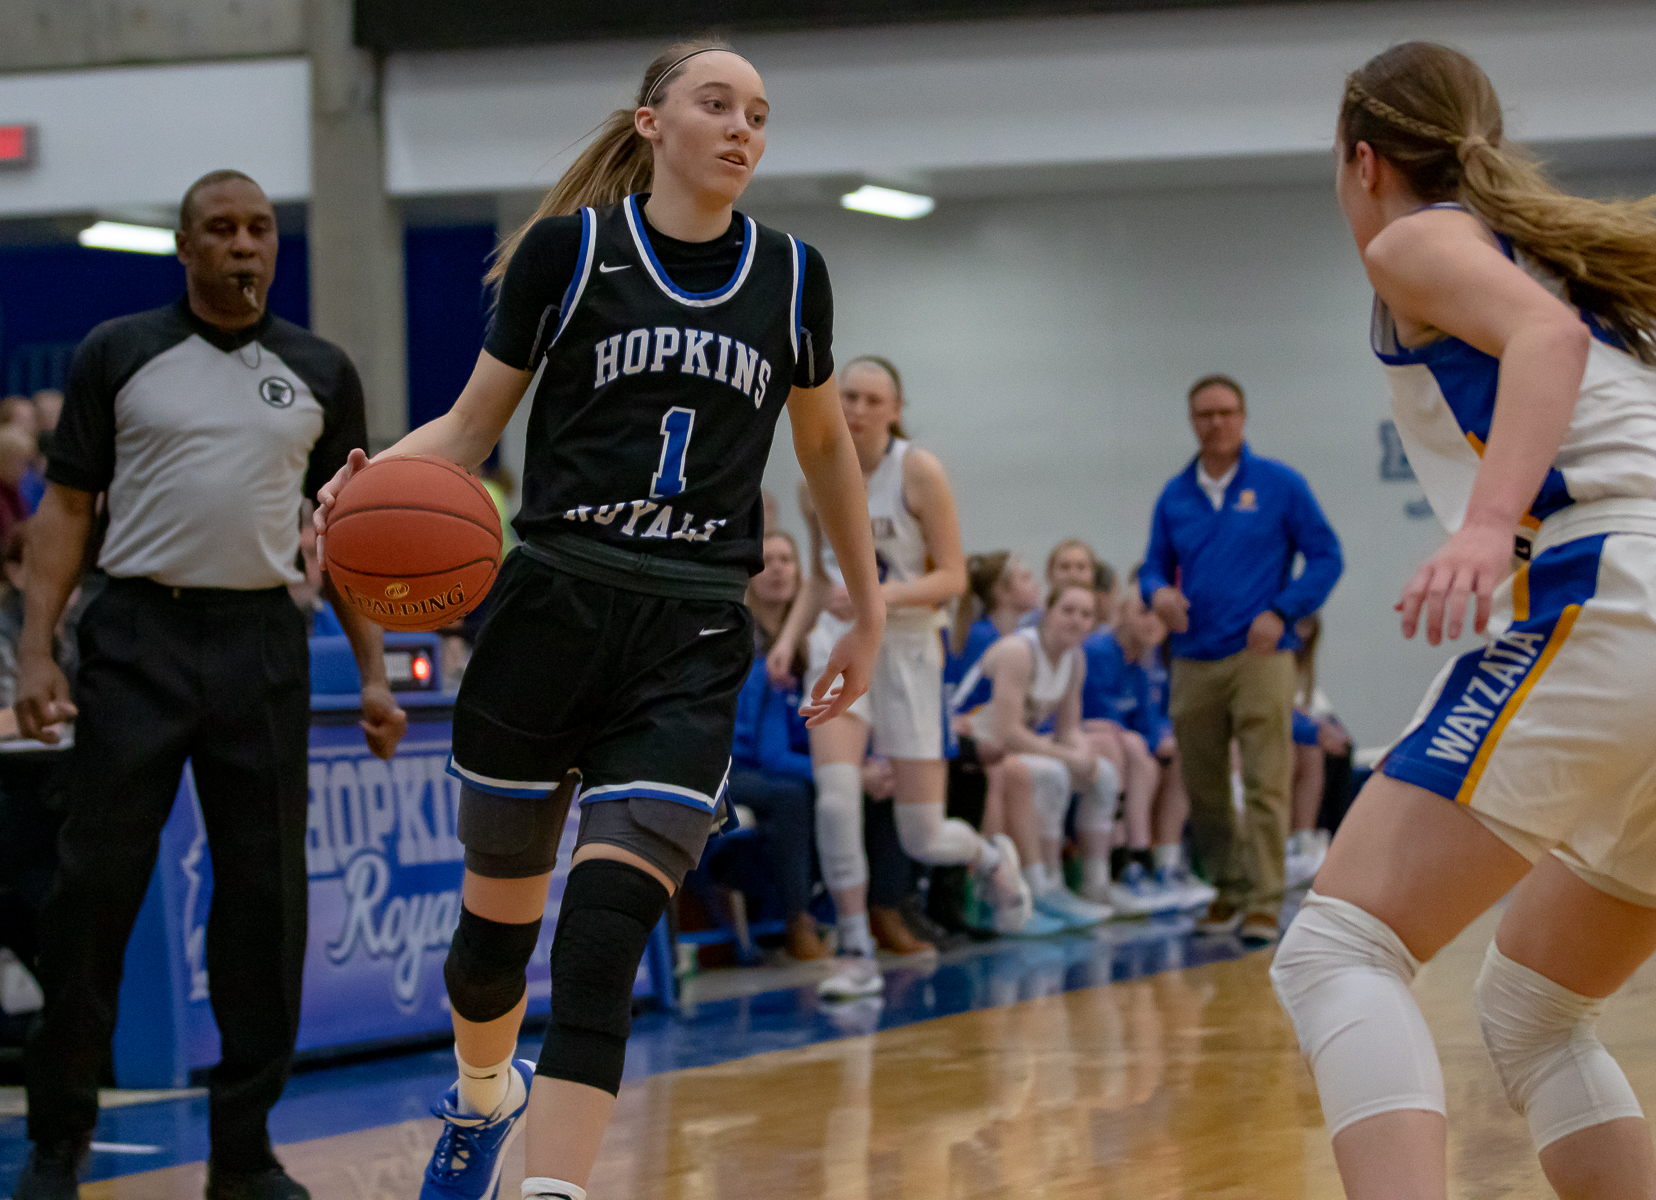 Hopkins Senior guard Paige Bueckers (1) scored 27 points against visiting Wayzata Tuesday night. The Royals defeated the Trojans 87-77 at Hopkins High School. Photo by Gary Mukai, SportsEngine